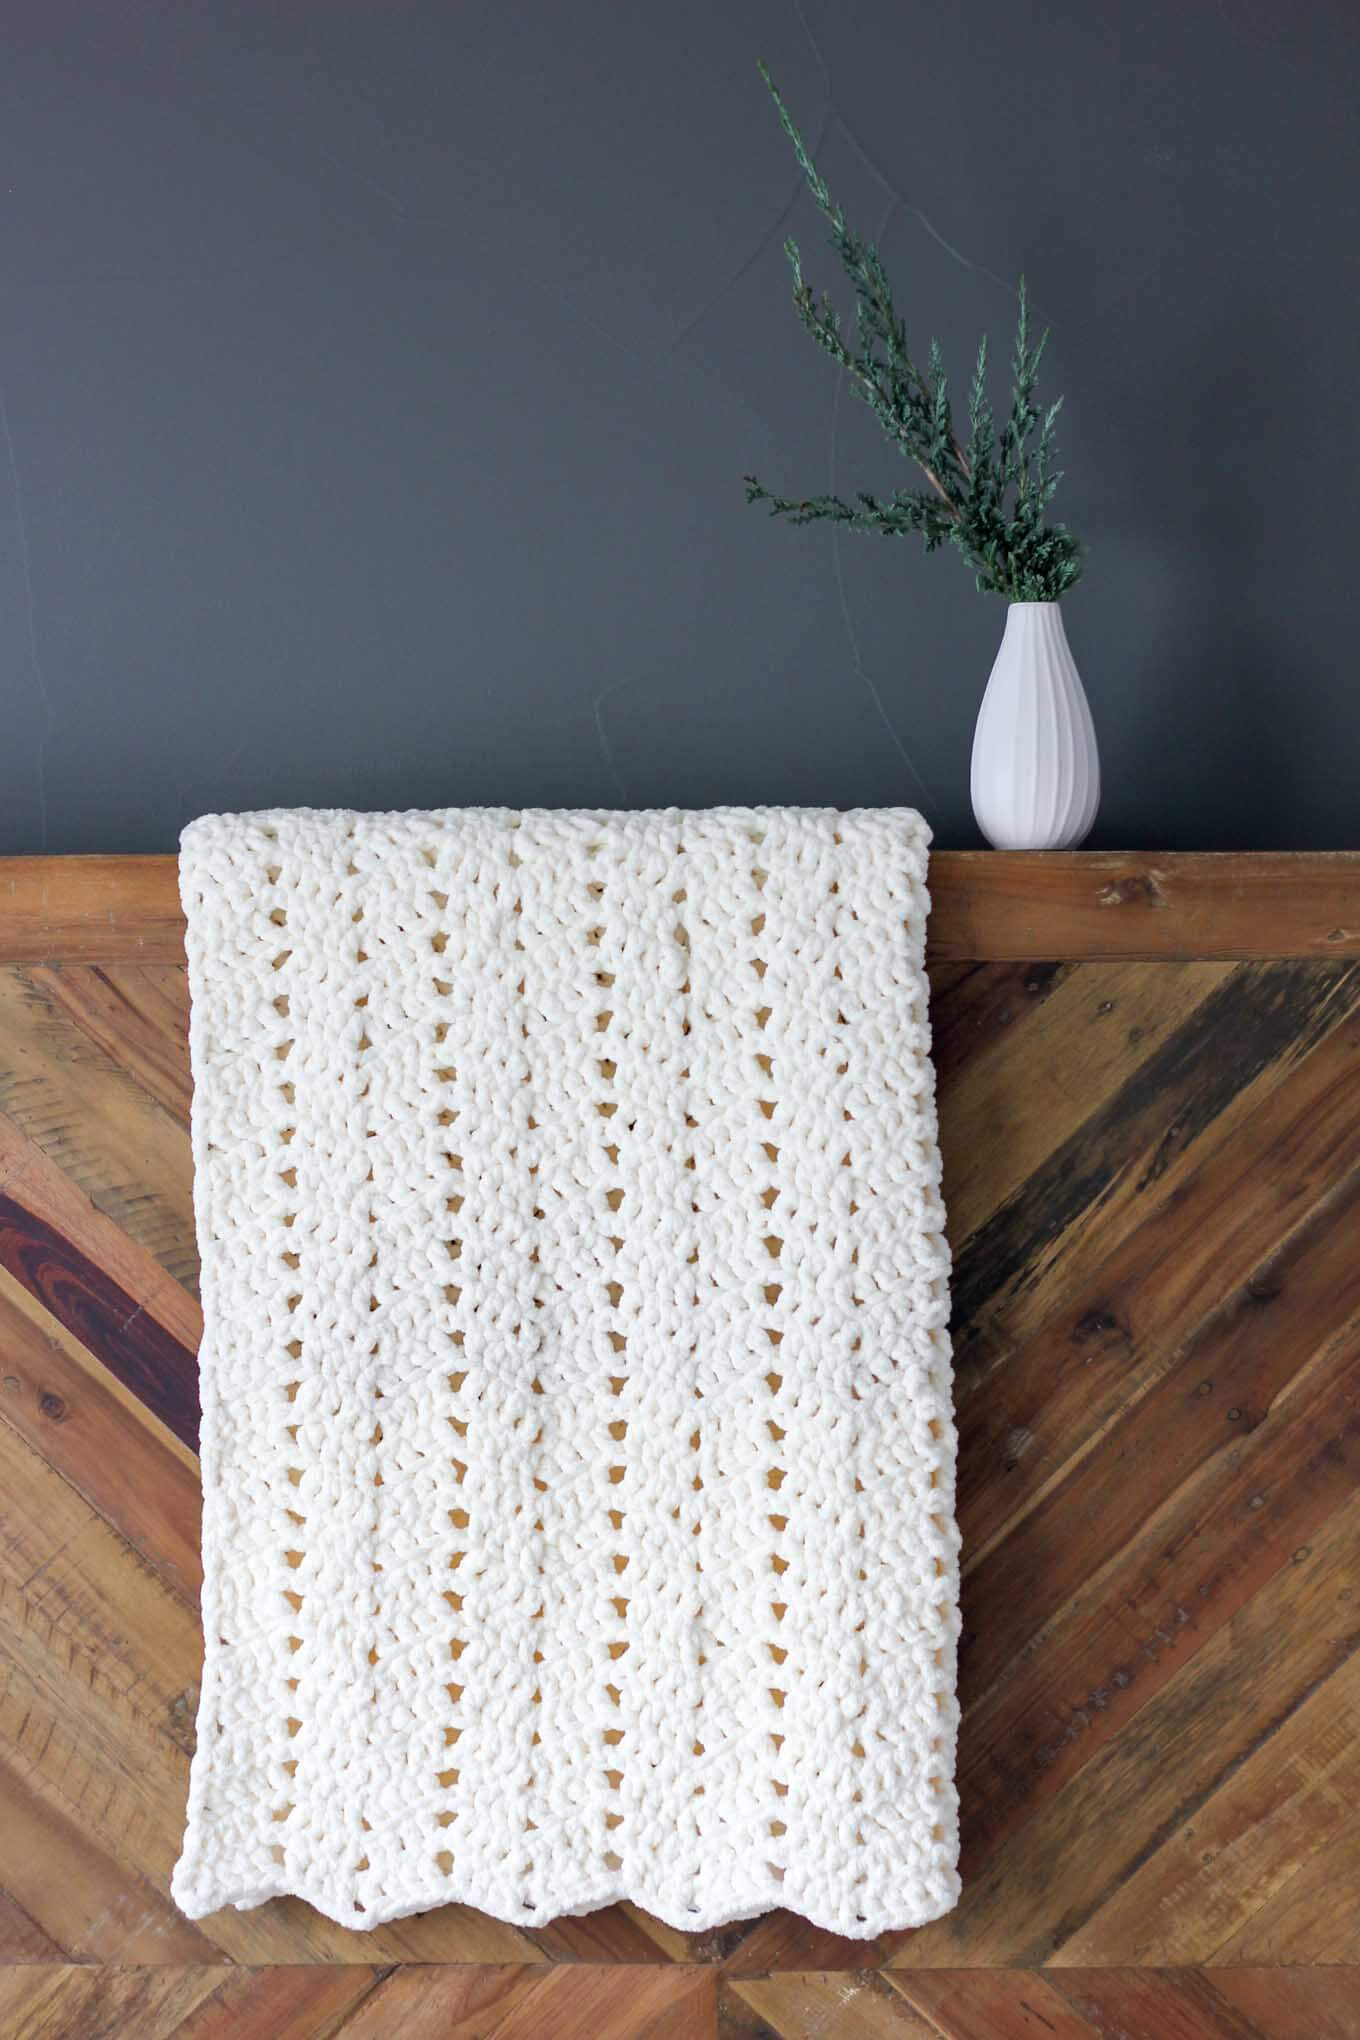 This chunky crochet blanket pattern makes a perfect timeless baby gift, but once you feel how soft it is, there's no way you won't want to make one for yourself too! The pattern explains how to make larger sizes and it works up super quickly in Bernat Blanket Yarn.